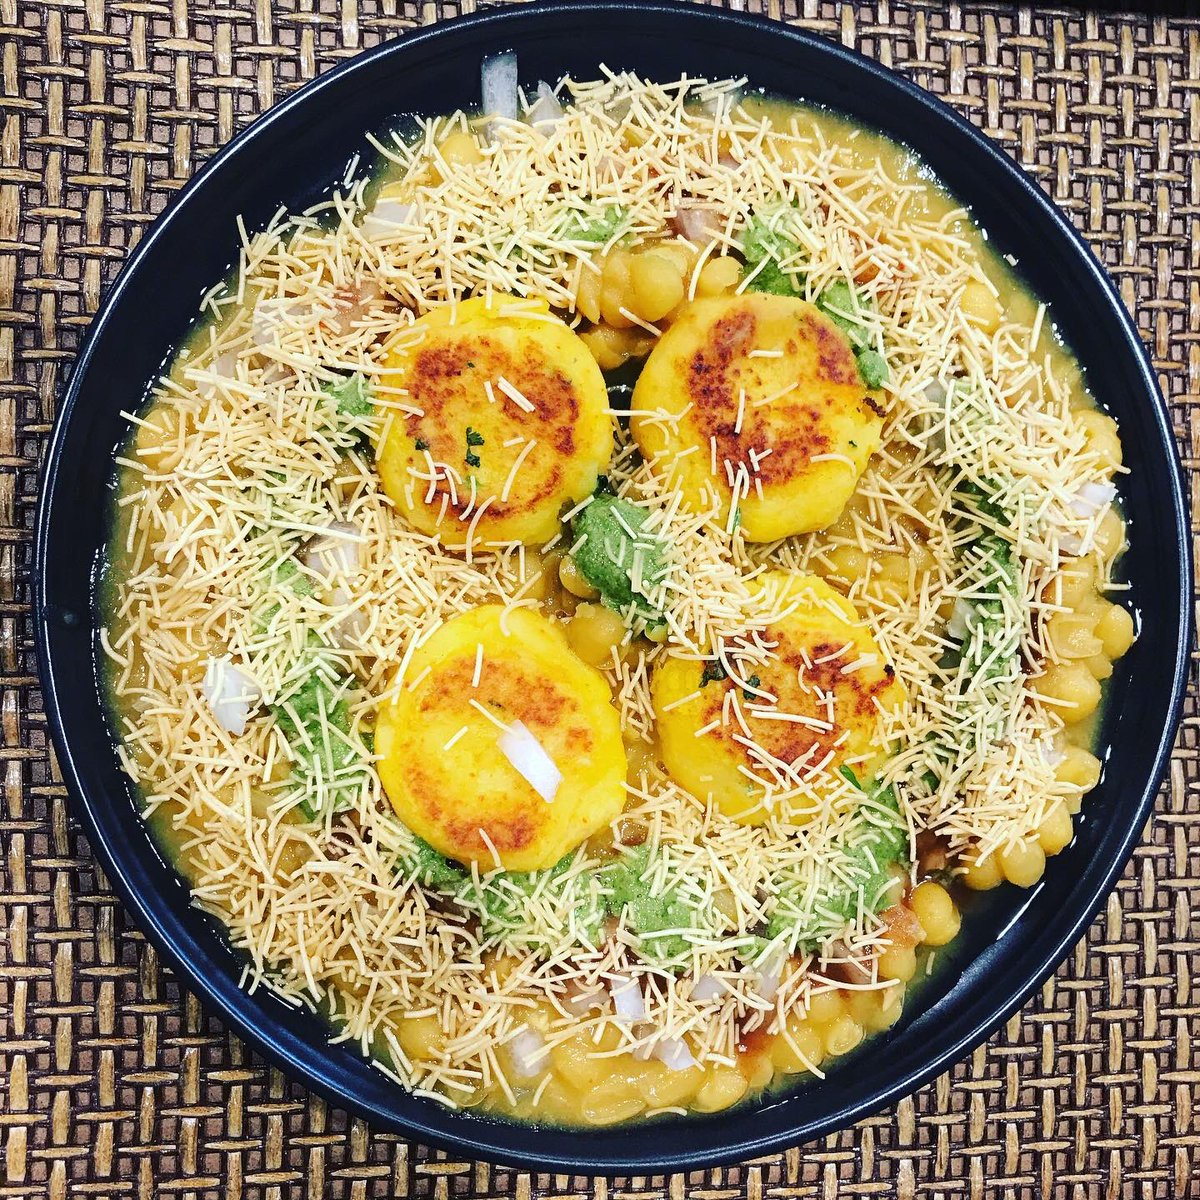 Most easy and yummy dish Ragda Pattice made of white peas, potato patty, green chutney, tamarind chutney, onion, sev and garnished with cilantro #foodie #homeMade #food #indianfood #indianfoodie #protein #pattice #LockdownLife #passion #foodfantasy #cooking #healthylifestyle https://t.co/eCzH5h3rJI